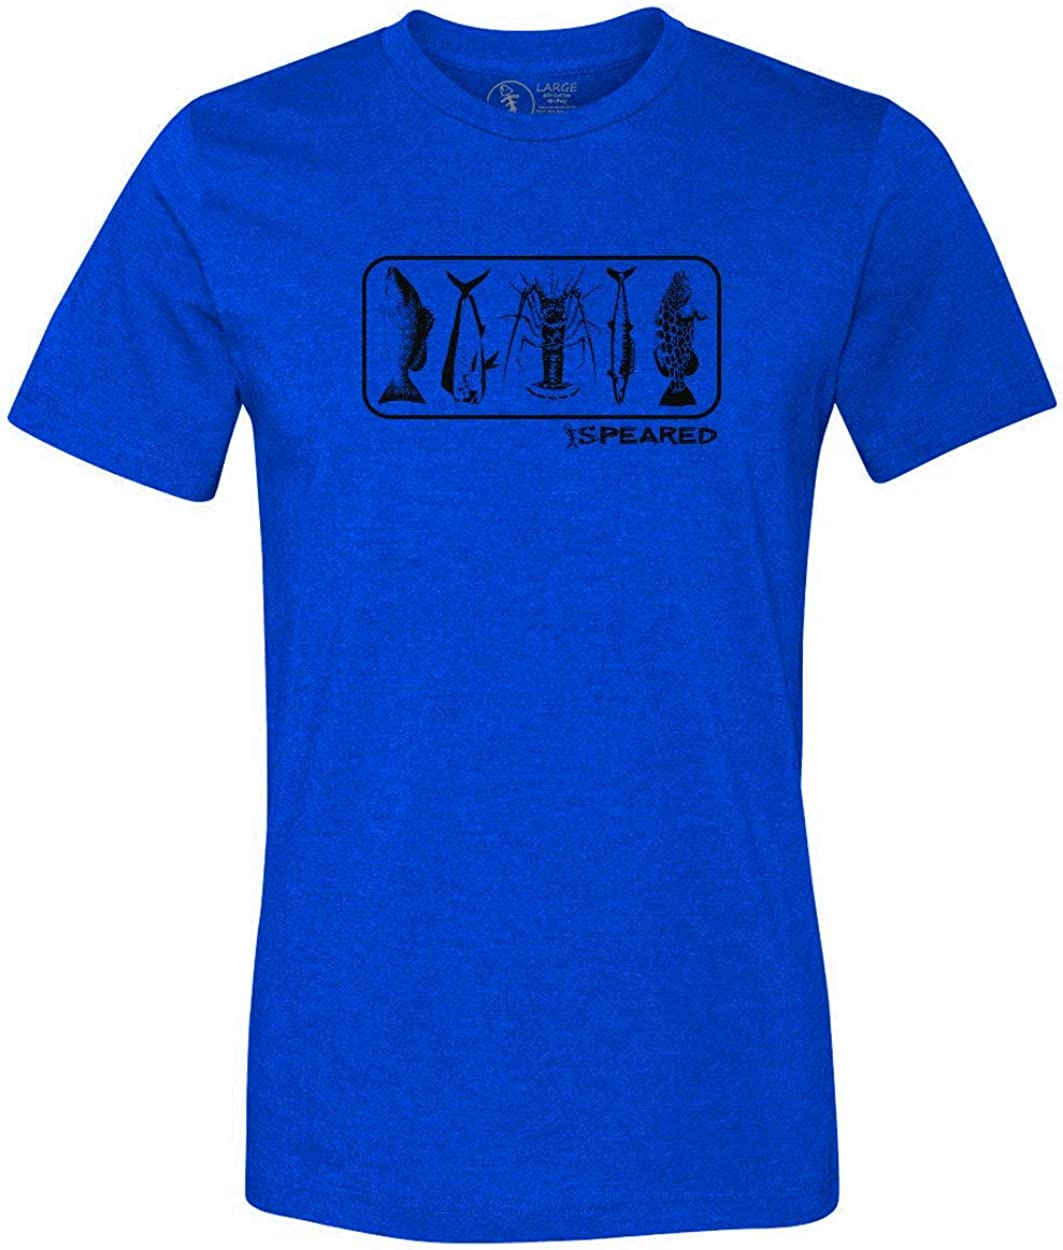 Speared Spearfishing T-Shirt Vintage Lobster Mahi Ranking TOP11 Snapper Ma Memphis Mall